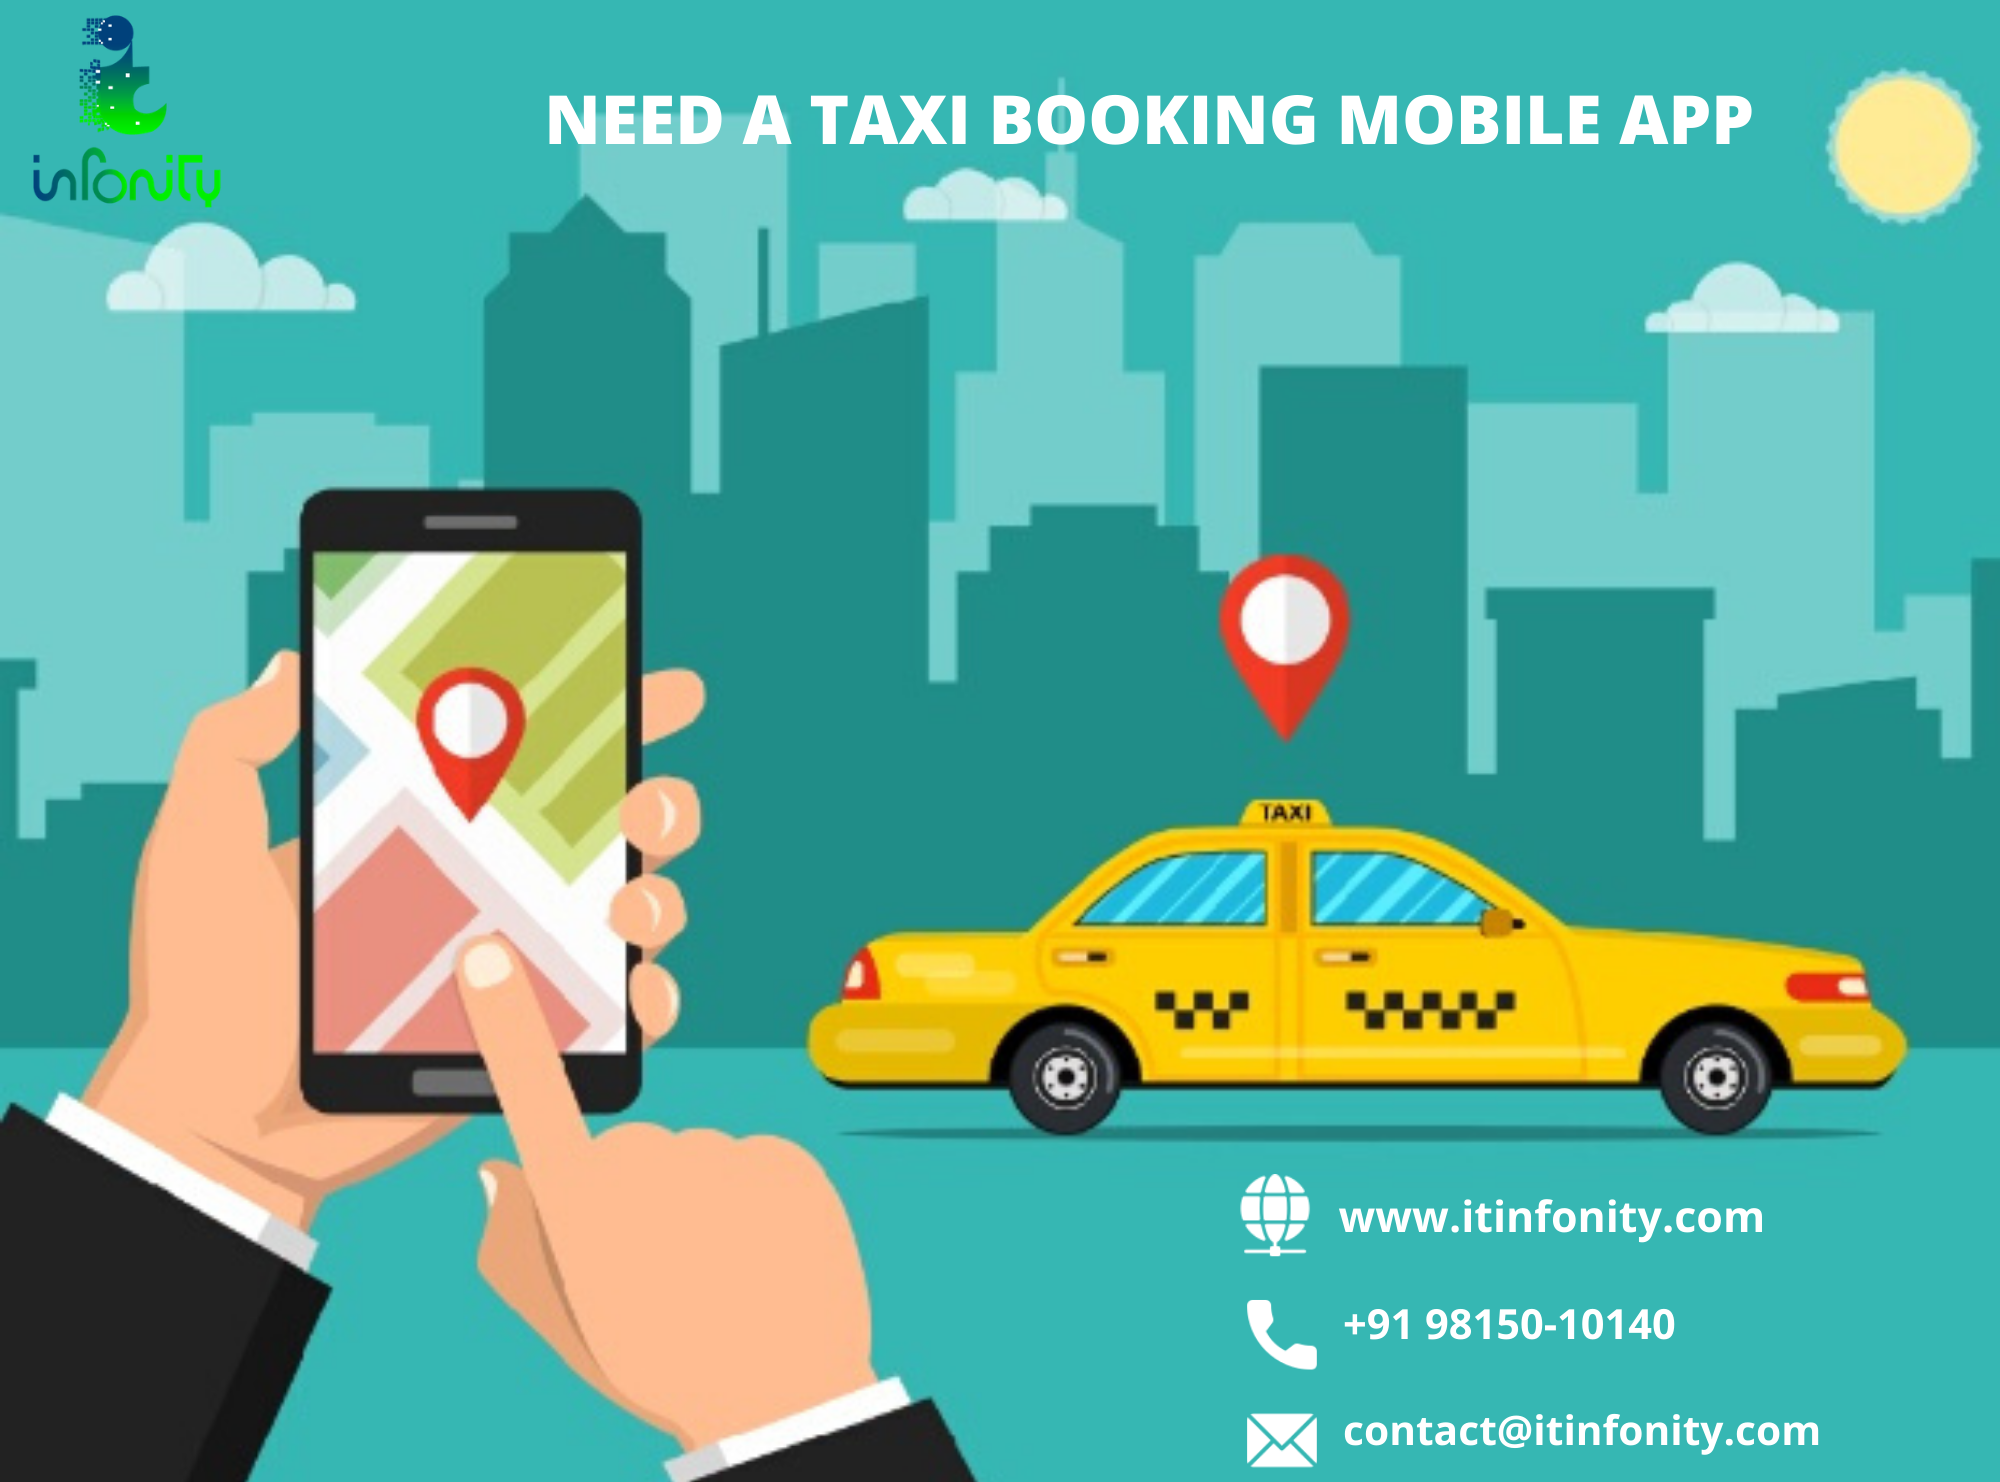 Are You Searching For A Cab Taxi Booking Mobile Application For